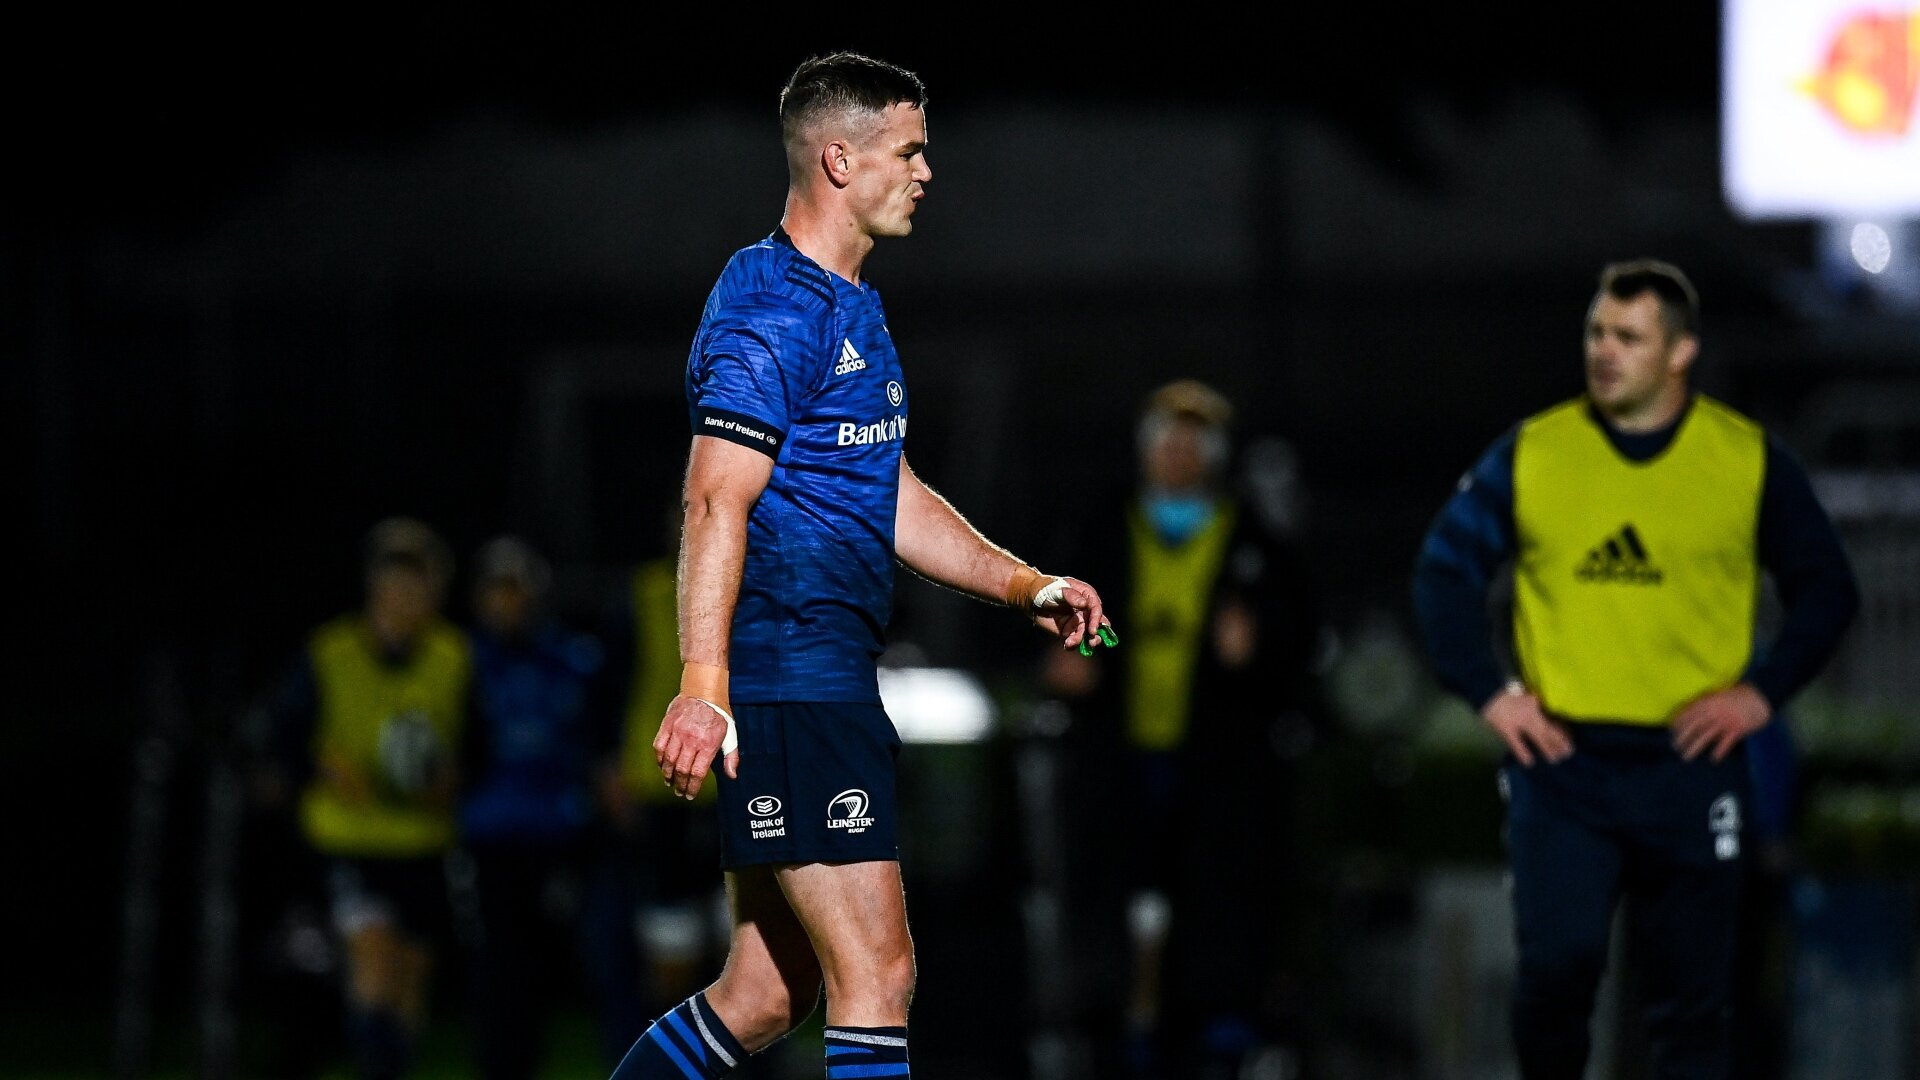 Same as ever in Dublin - a pre-Six Nations Sexton injury scare and a Dragons thrashing by Leinster